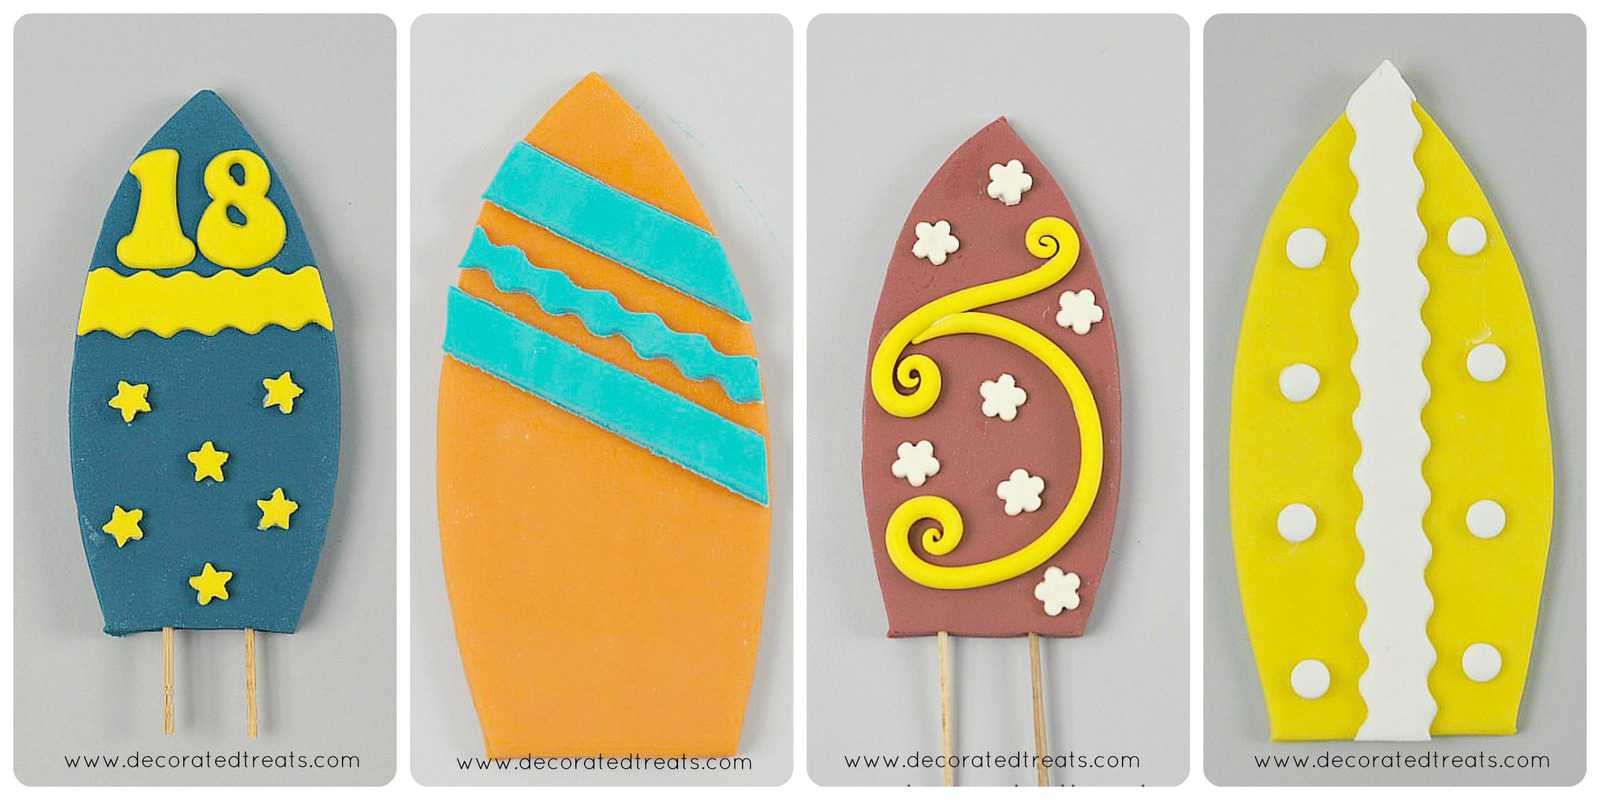 Fondant surfboards in orange and maroon